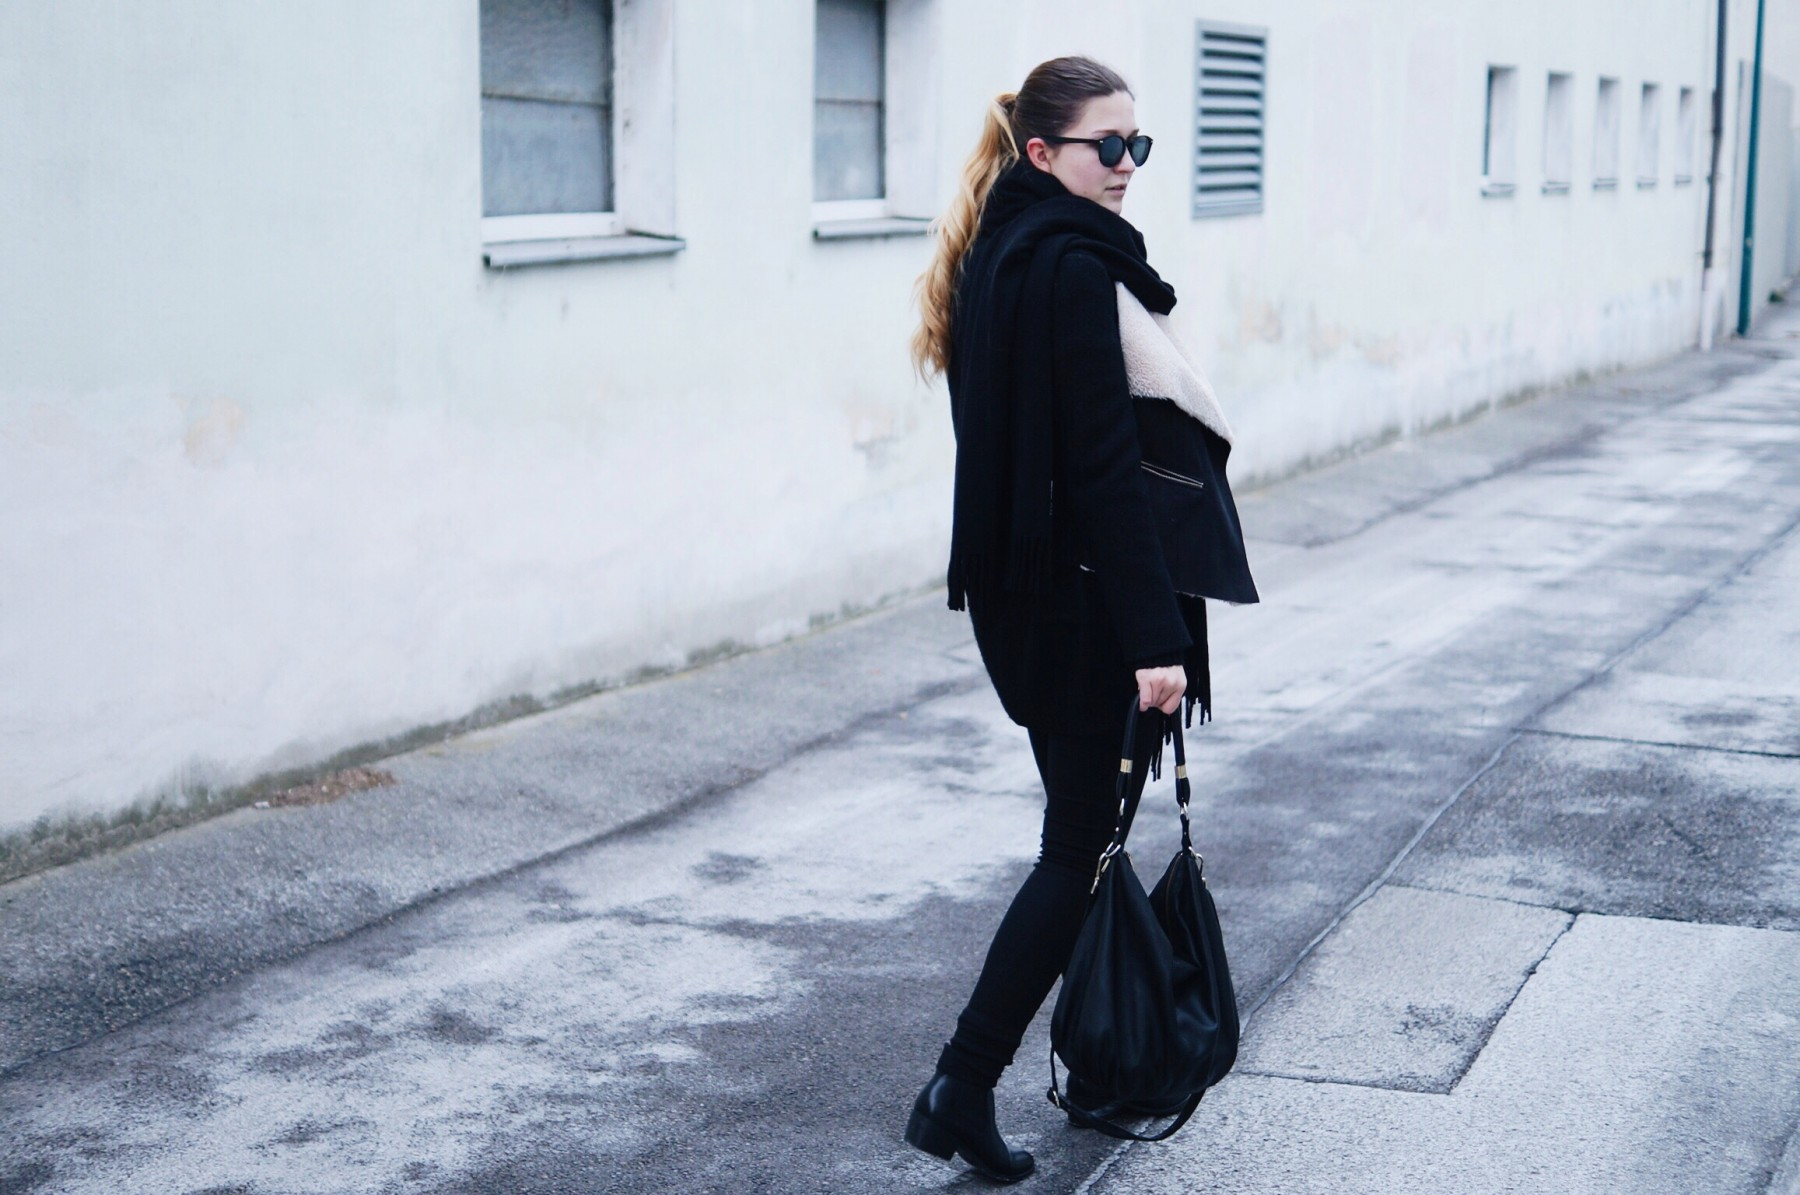 acne_studios_scarf_lambskin_jacket_winter_outfit2